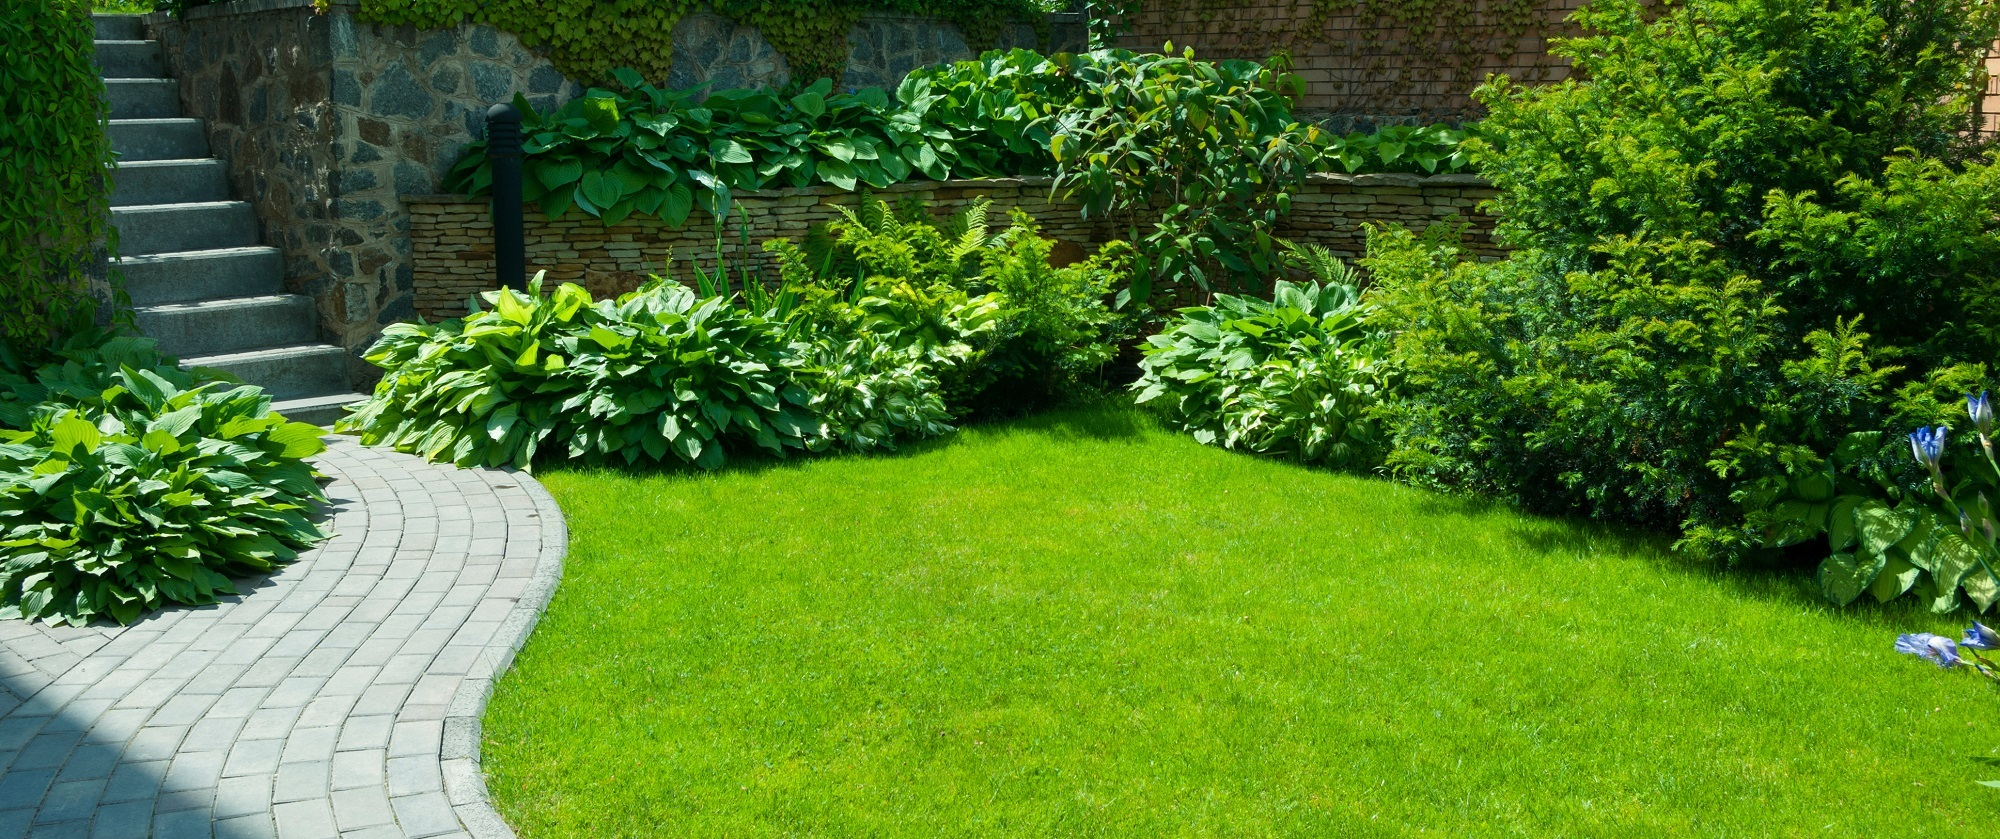 Does a nice garden add value? Yes! And here are five ways you can create one